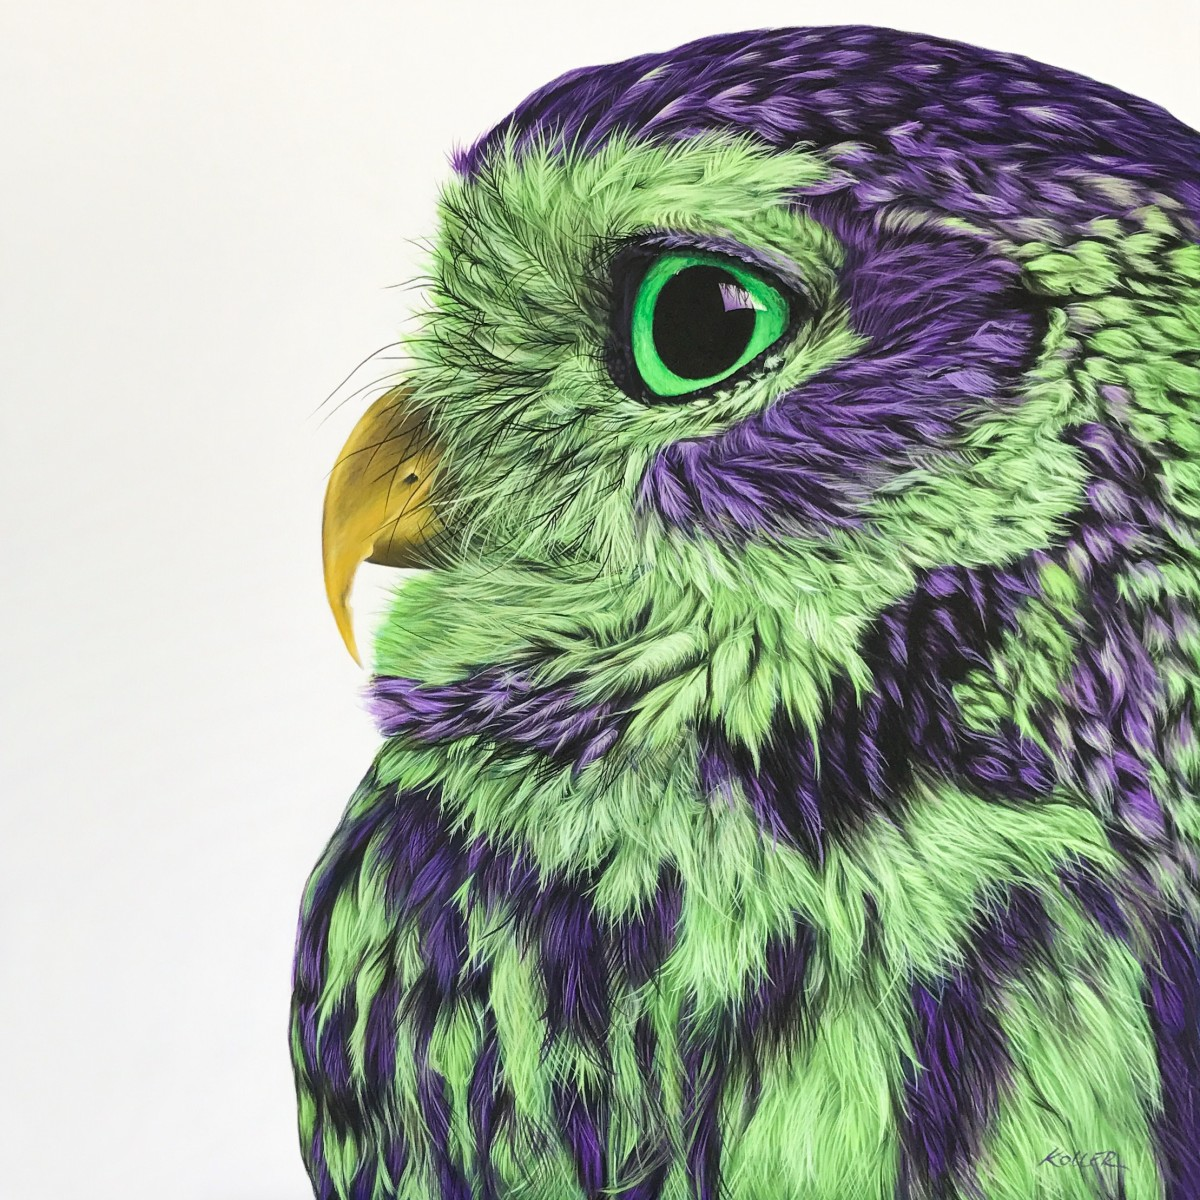 OWL IN PURPLE & GREEN, 2017